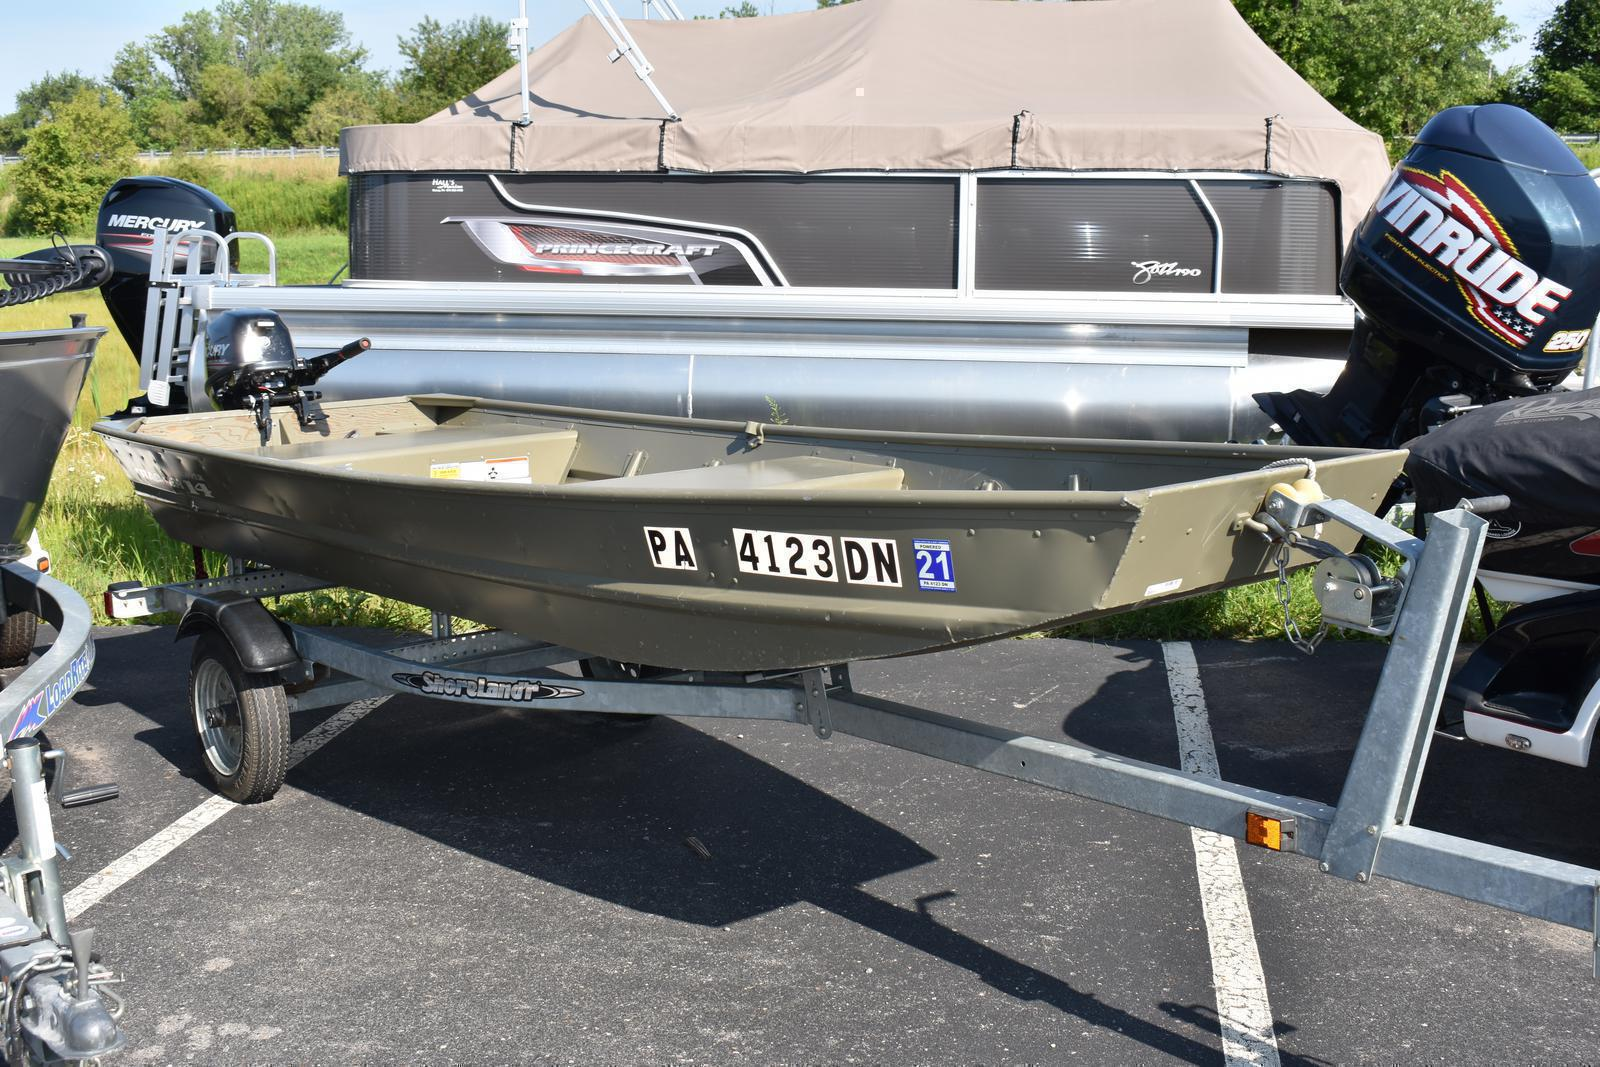 Used Inventory Hall's Marine Muncy, PA (570) 935-0159